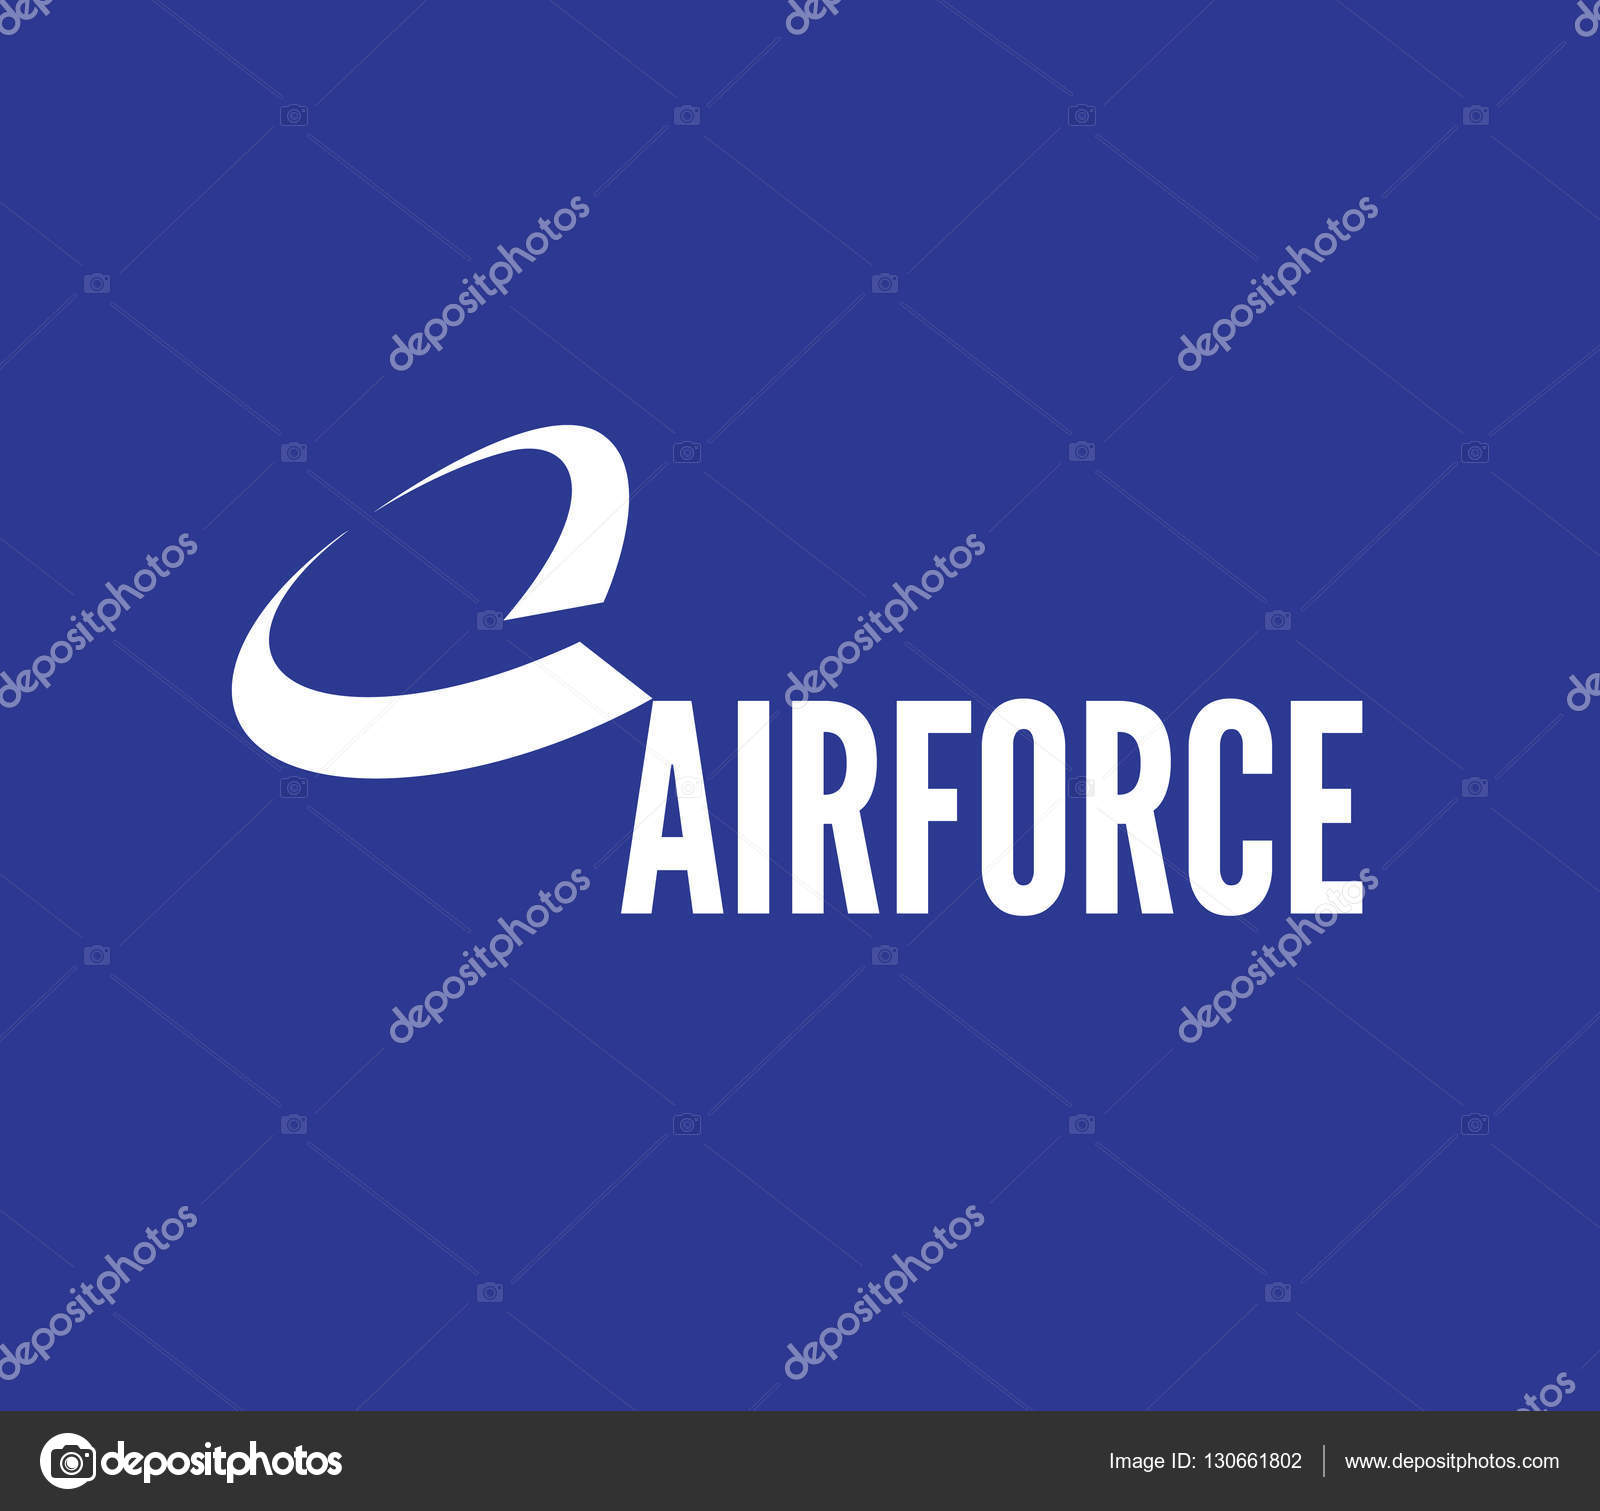 Air force logo stock vector sdcrea 130661802 air force logo stock vector voltagebd Images